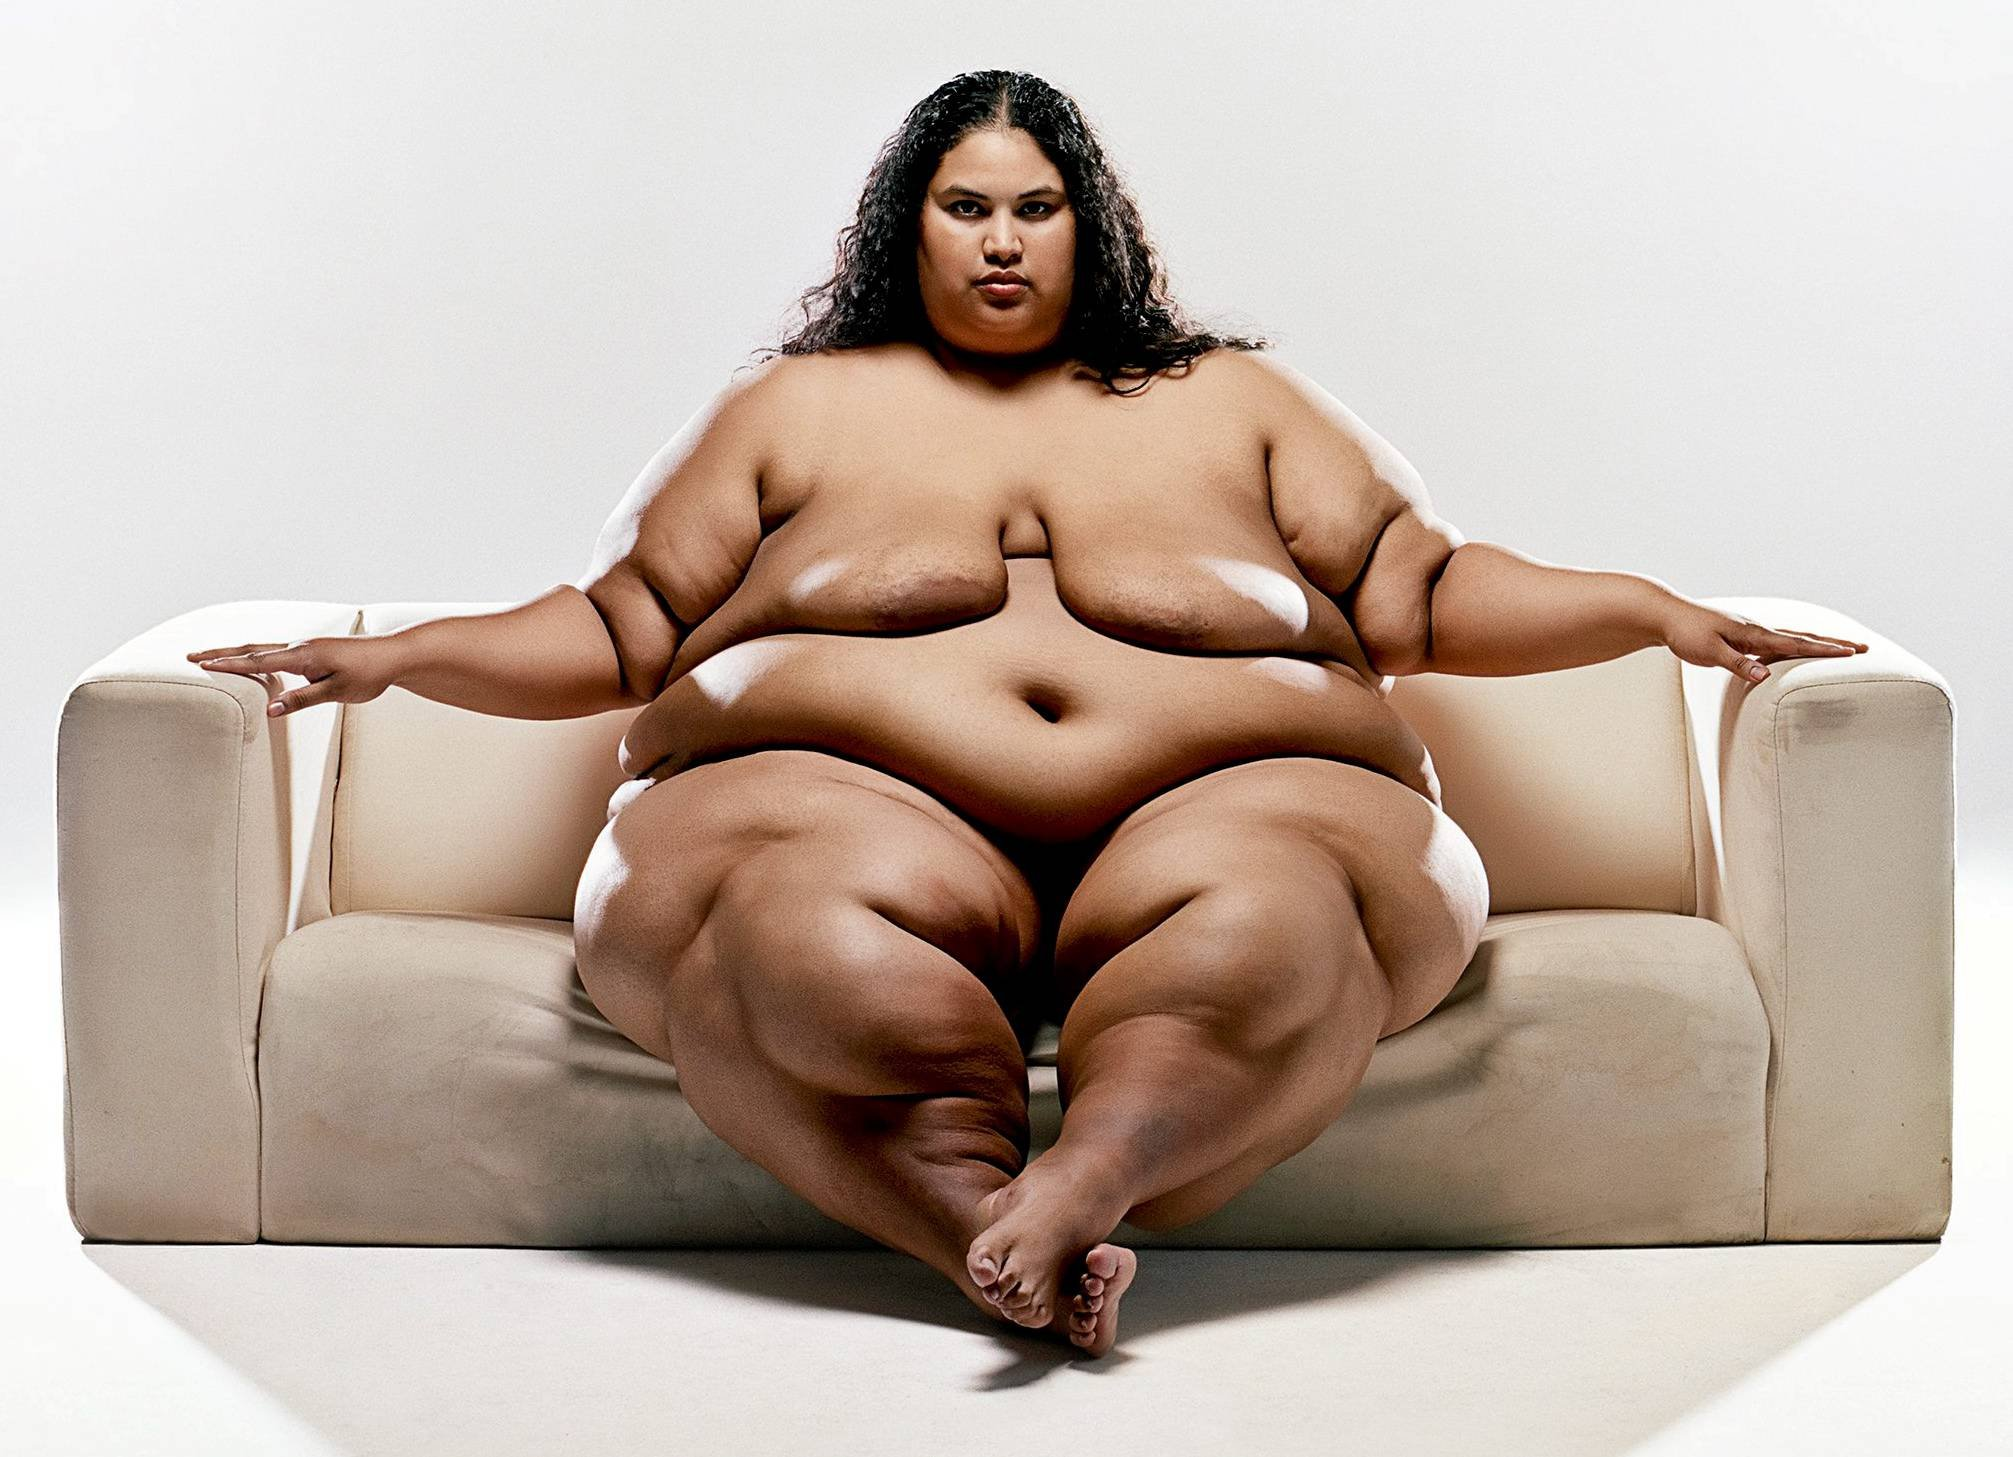 Yossi loloi photographs obese women in the nude, challenges traditional notions of beauty